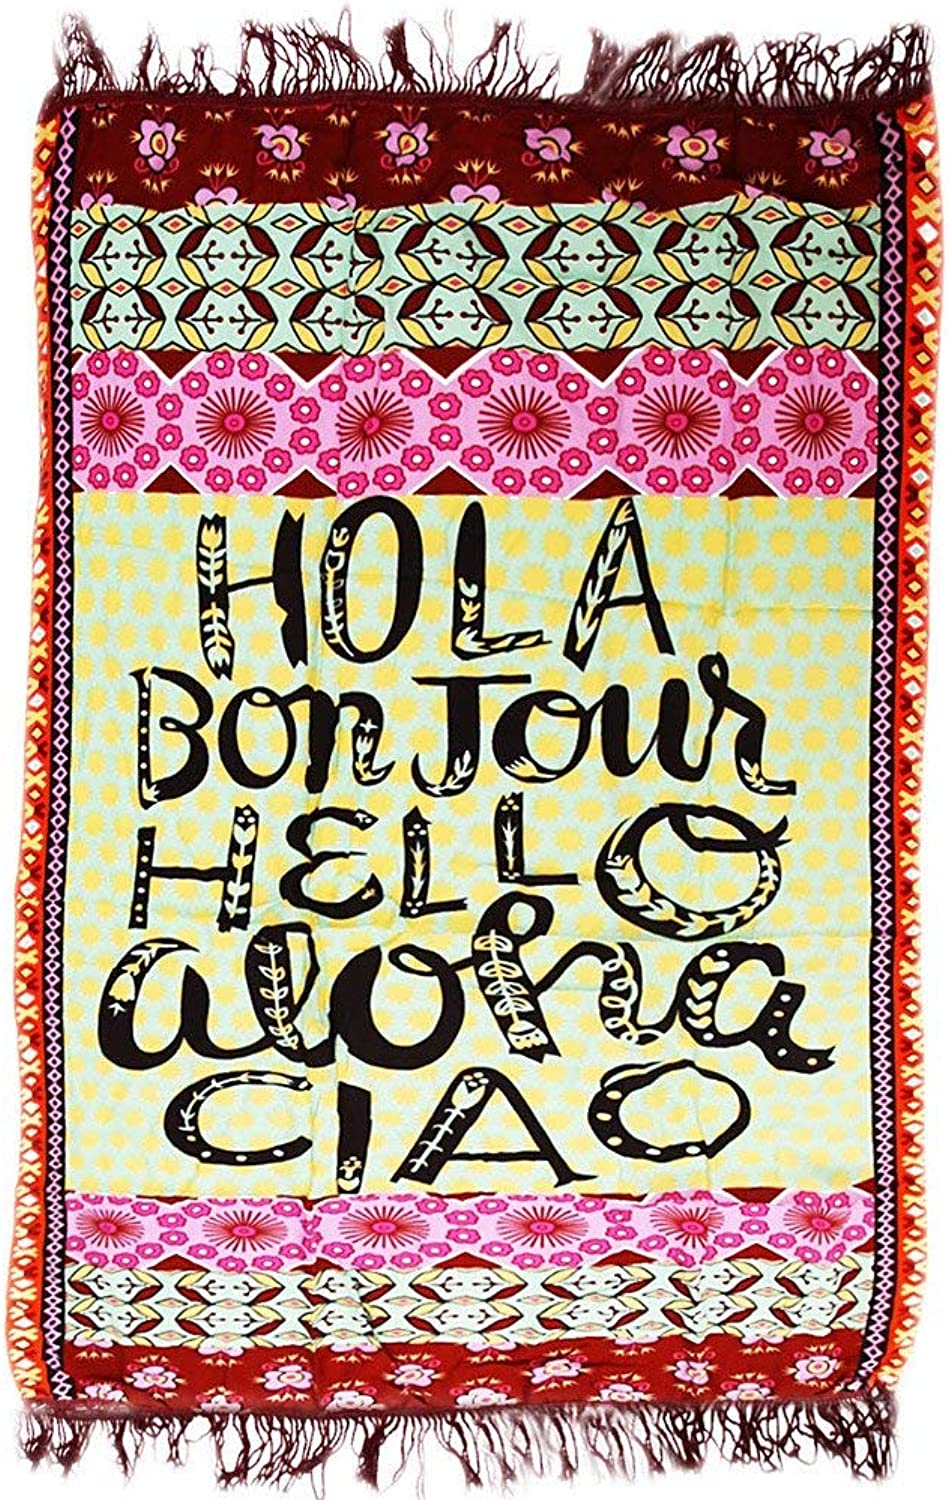 Beach Towel Letters Printed Beach Throw Tapestry Hippy Boho Cotton Tablecloth Beach Towel Square Yoga Mat for Kids & Adults